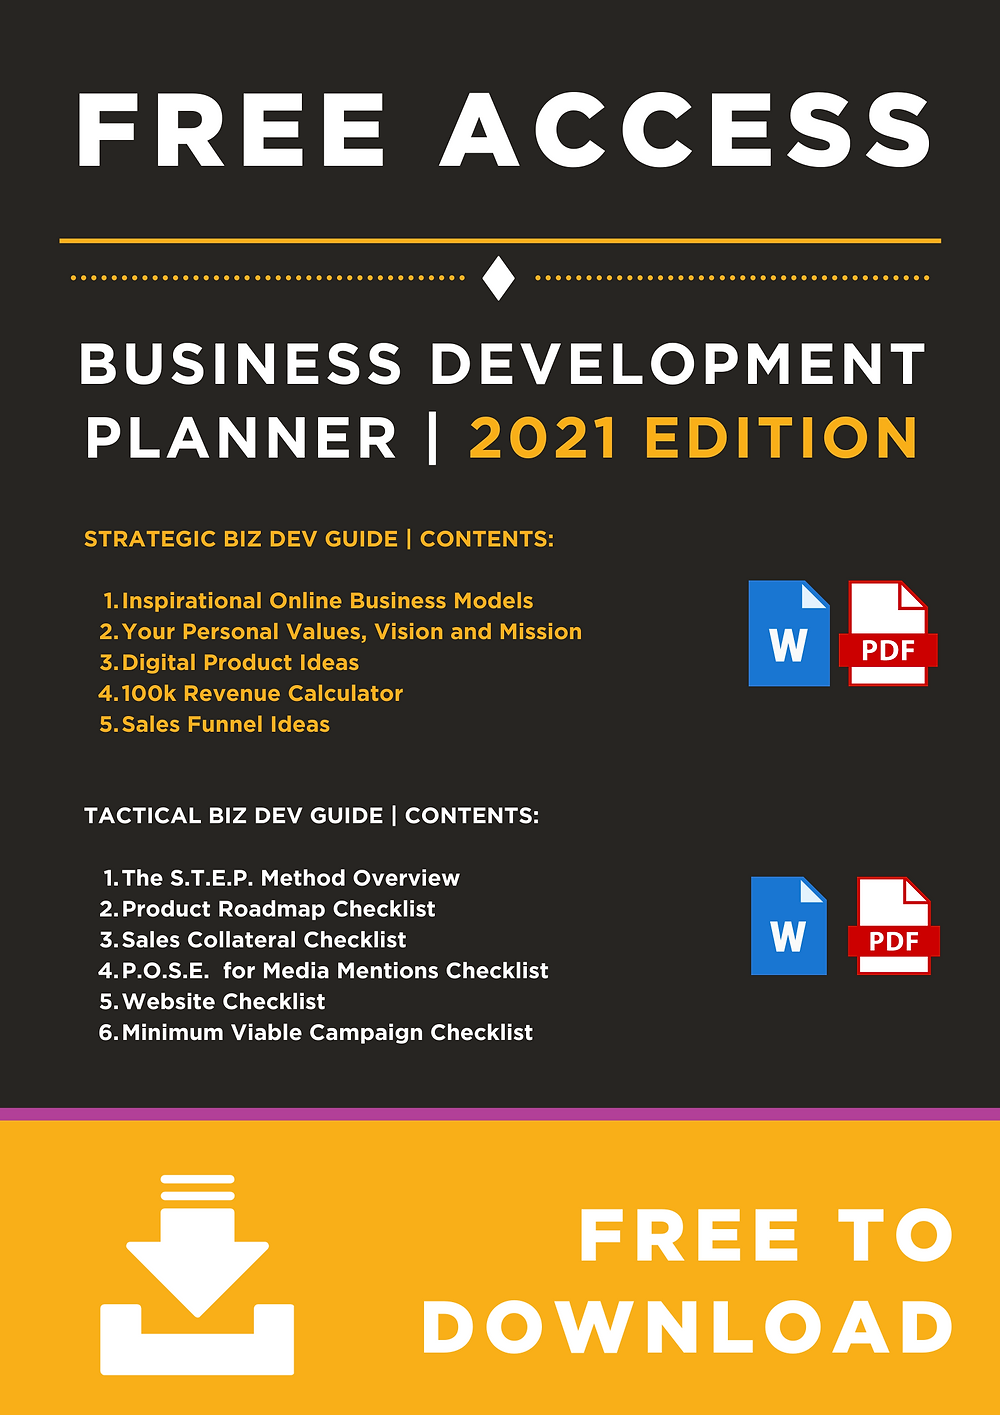 FREE ACCESS: Teach a Brand to Fish Business Development Planner (2021 Edition)